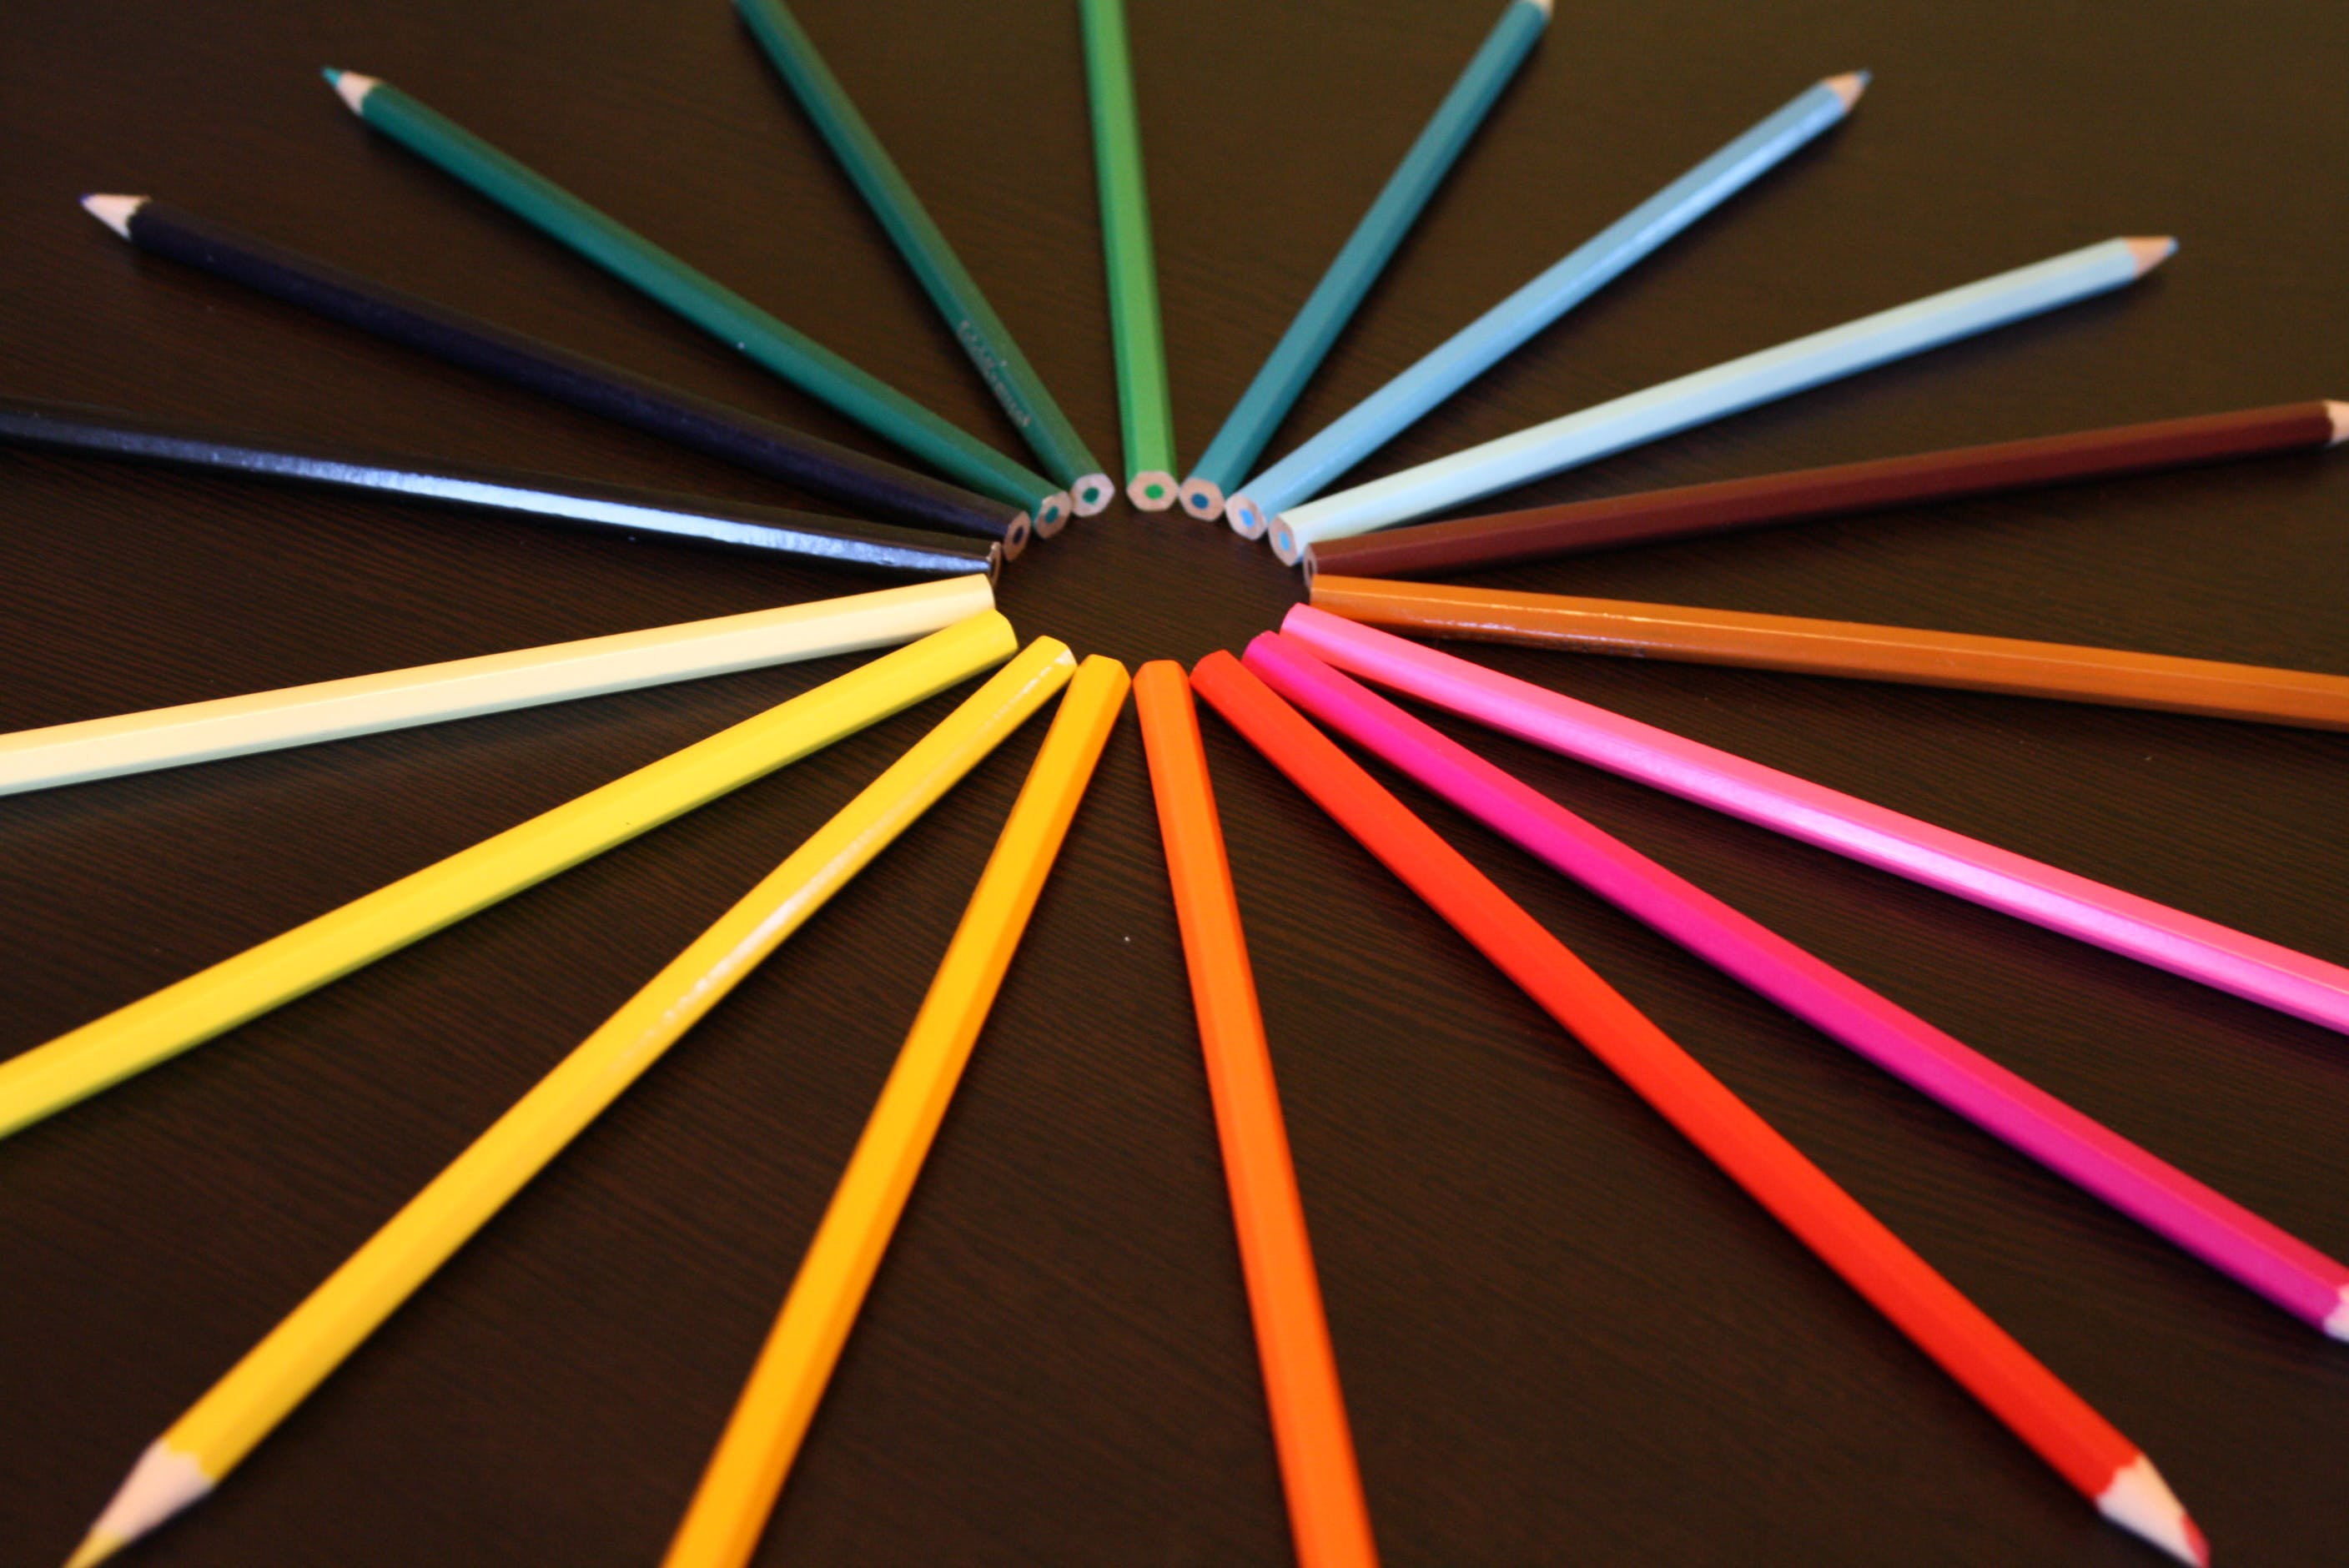 Free stock photo of color pencils, dark table